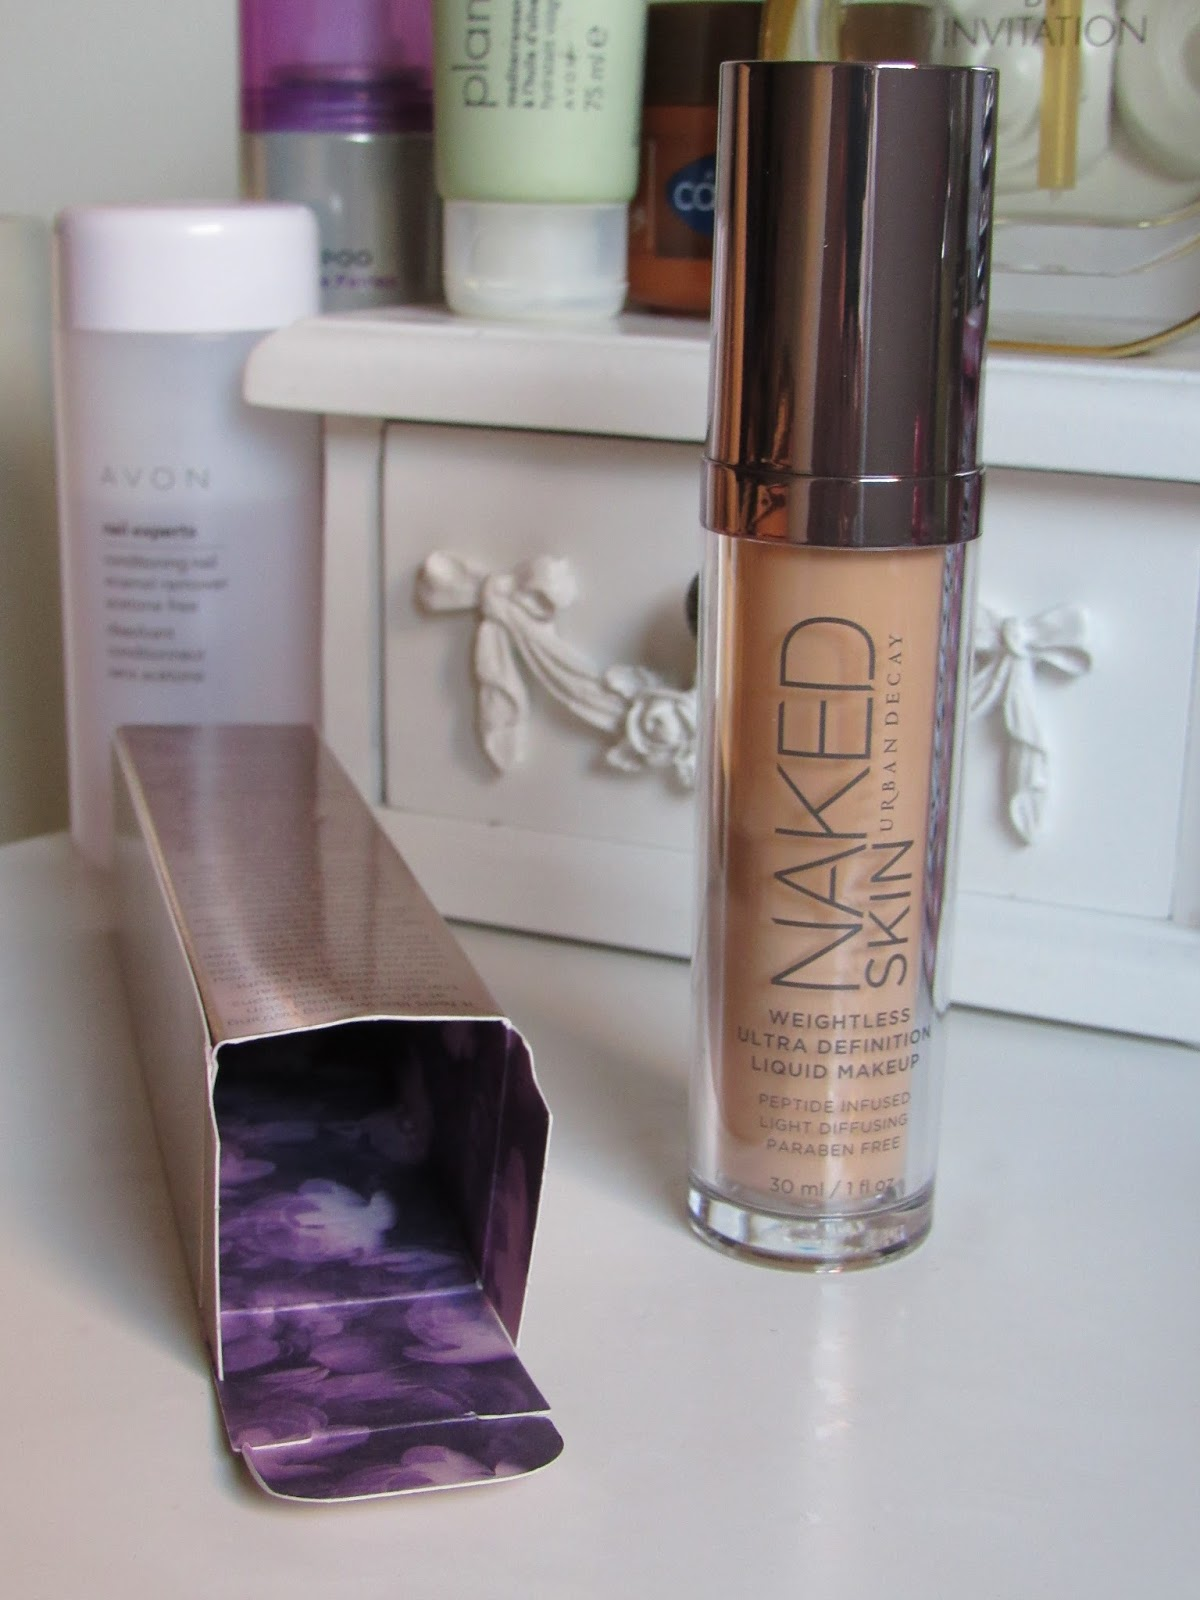 Blooming Fiction beauty review of Urban Decay's Naked Skin foundation